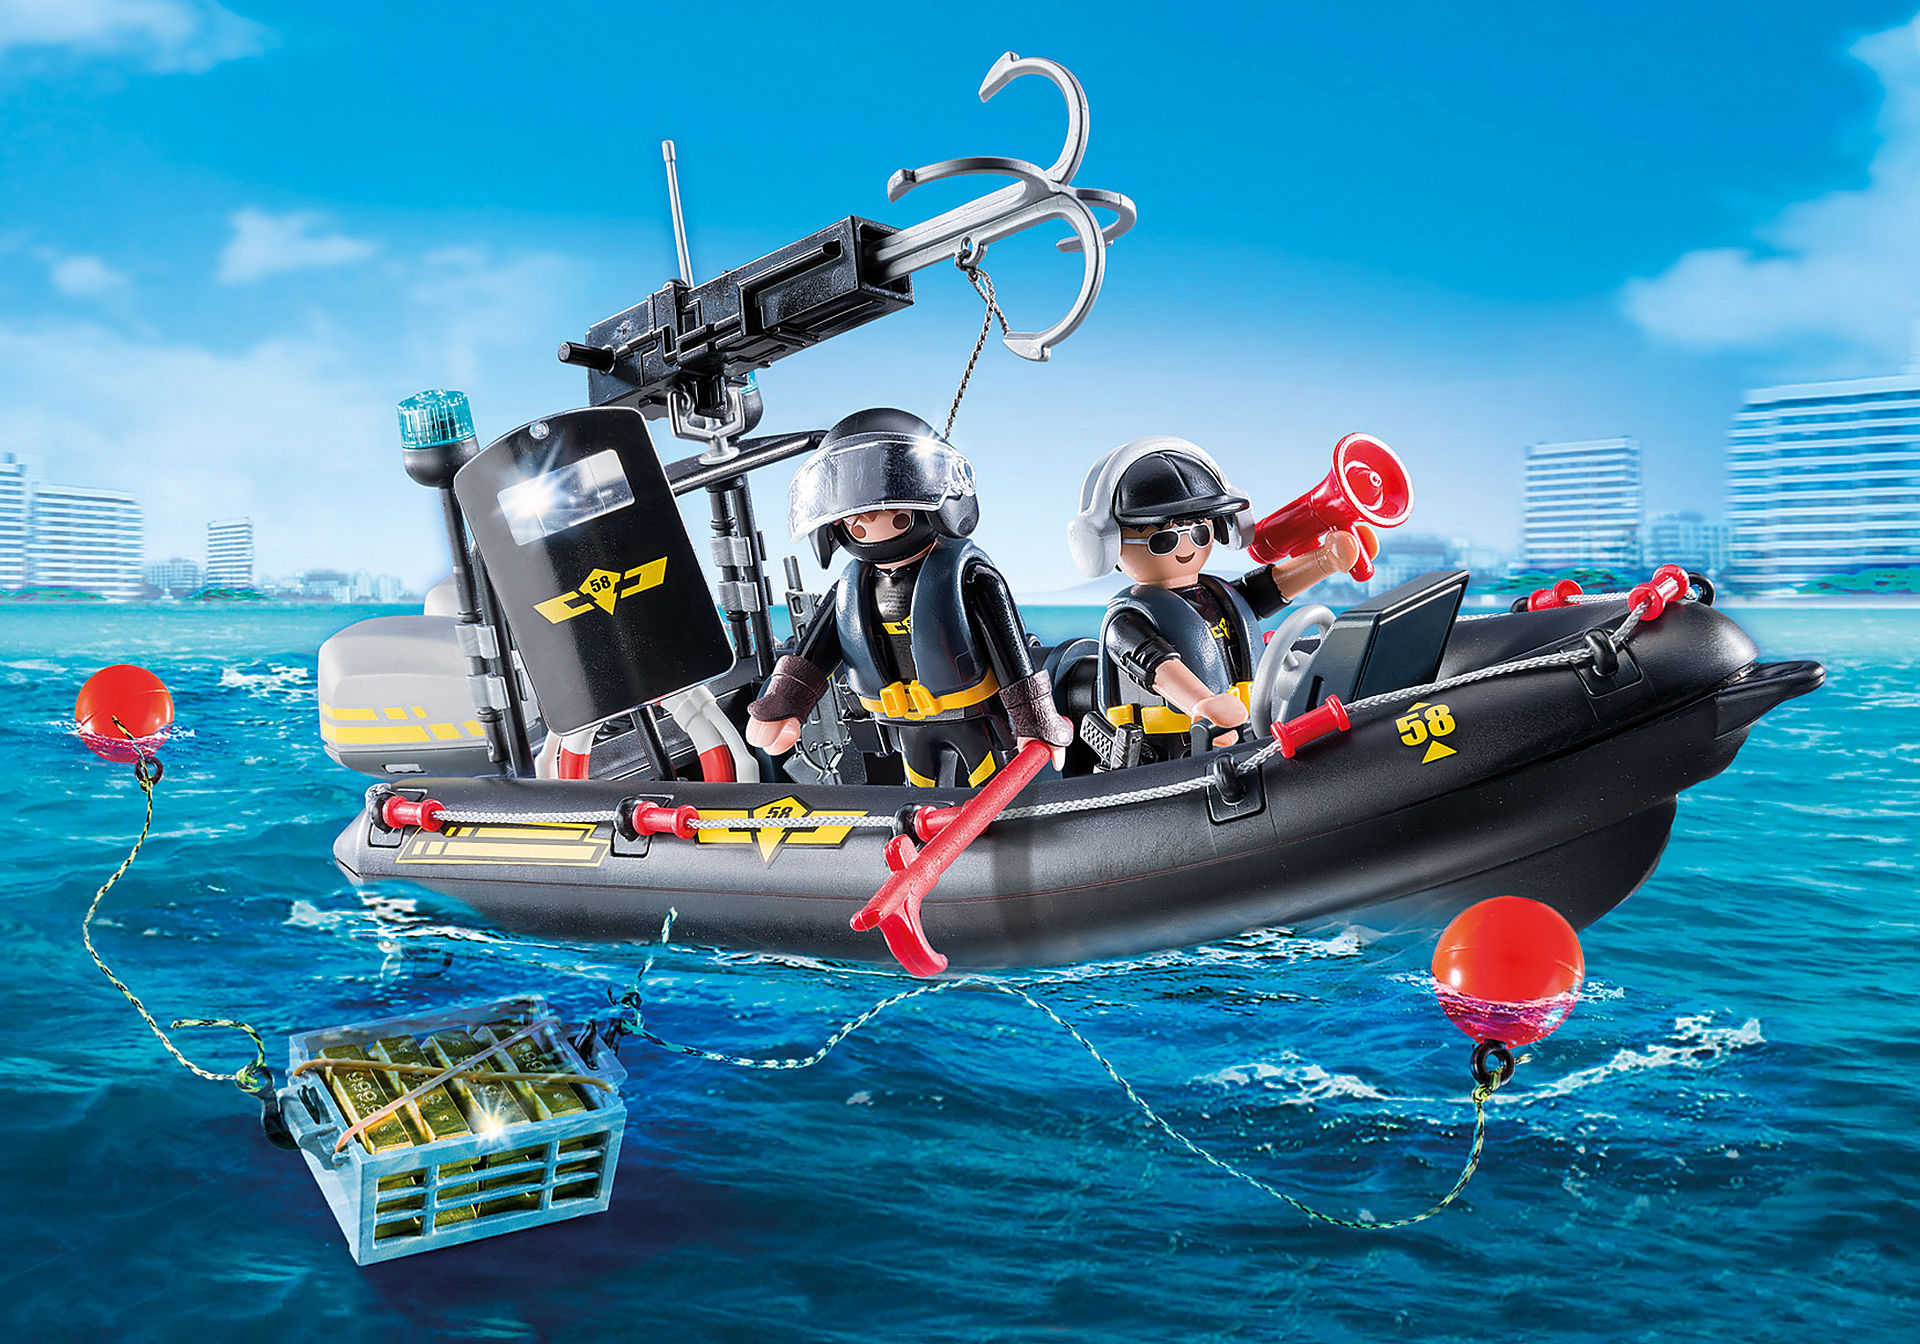 http://media.playmobil.com/i/playmobil/9362_product_detail/Gommone Unità Speciale con refurtiva